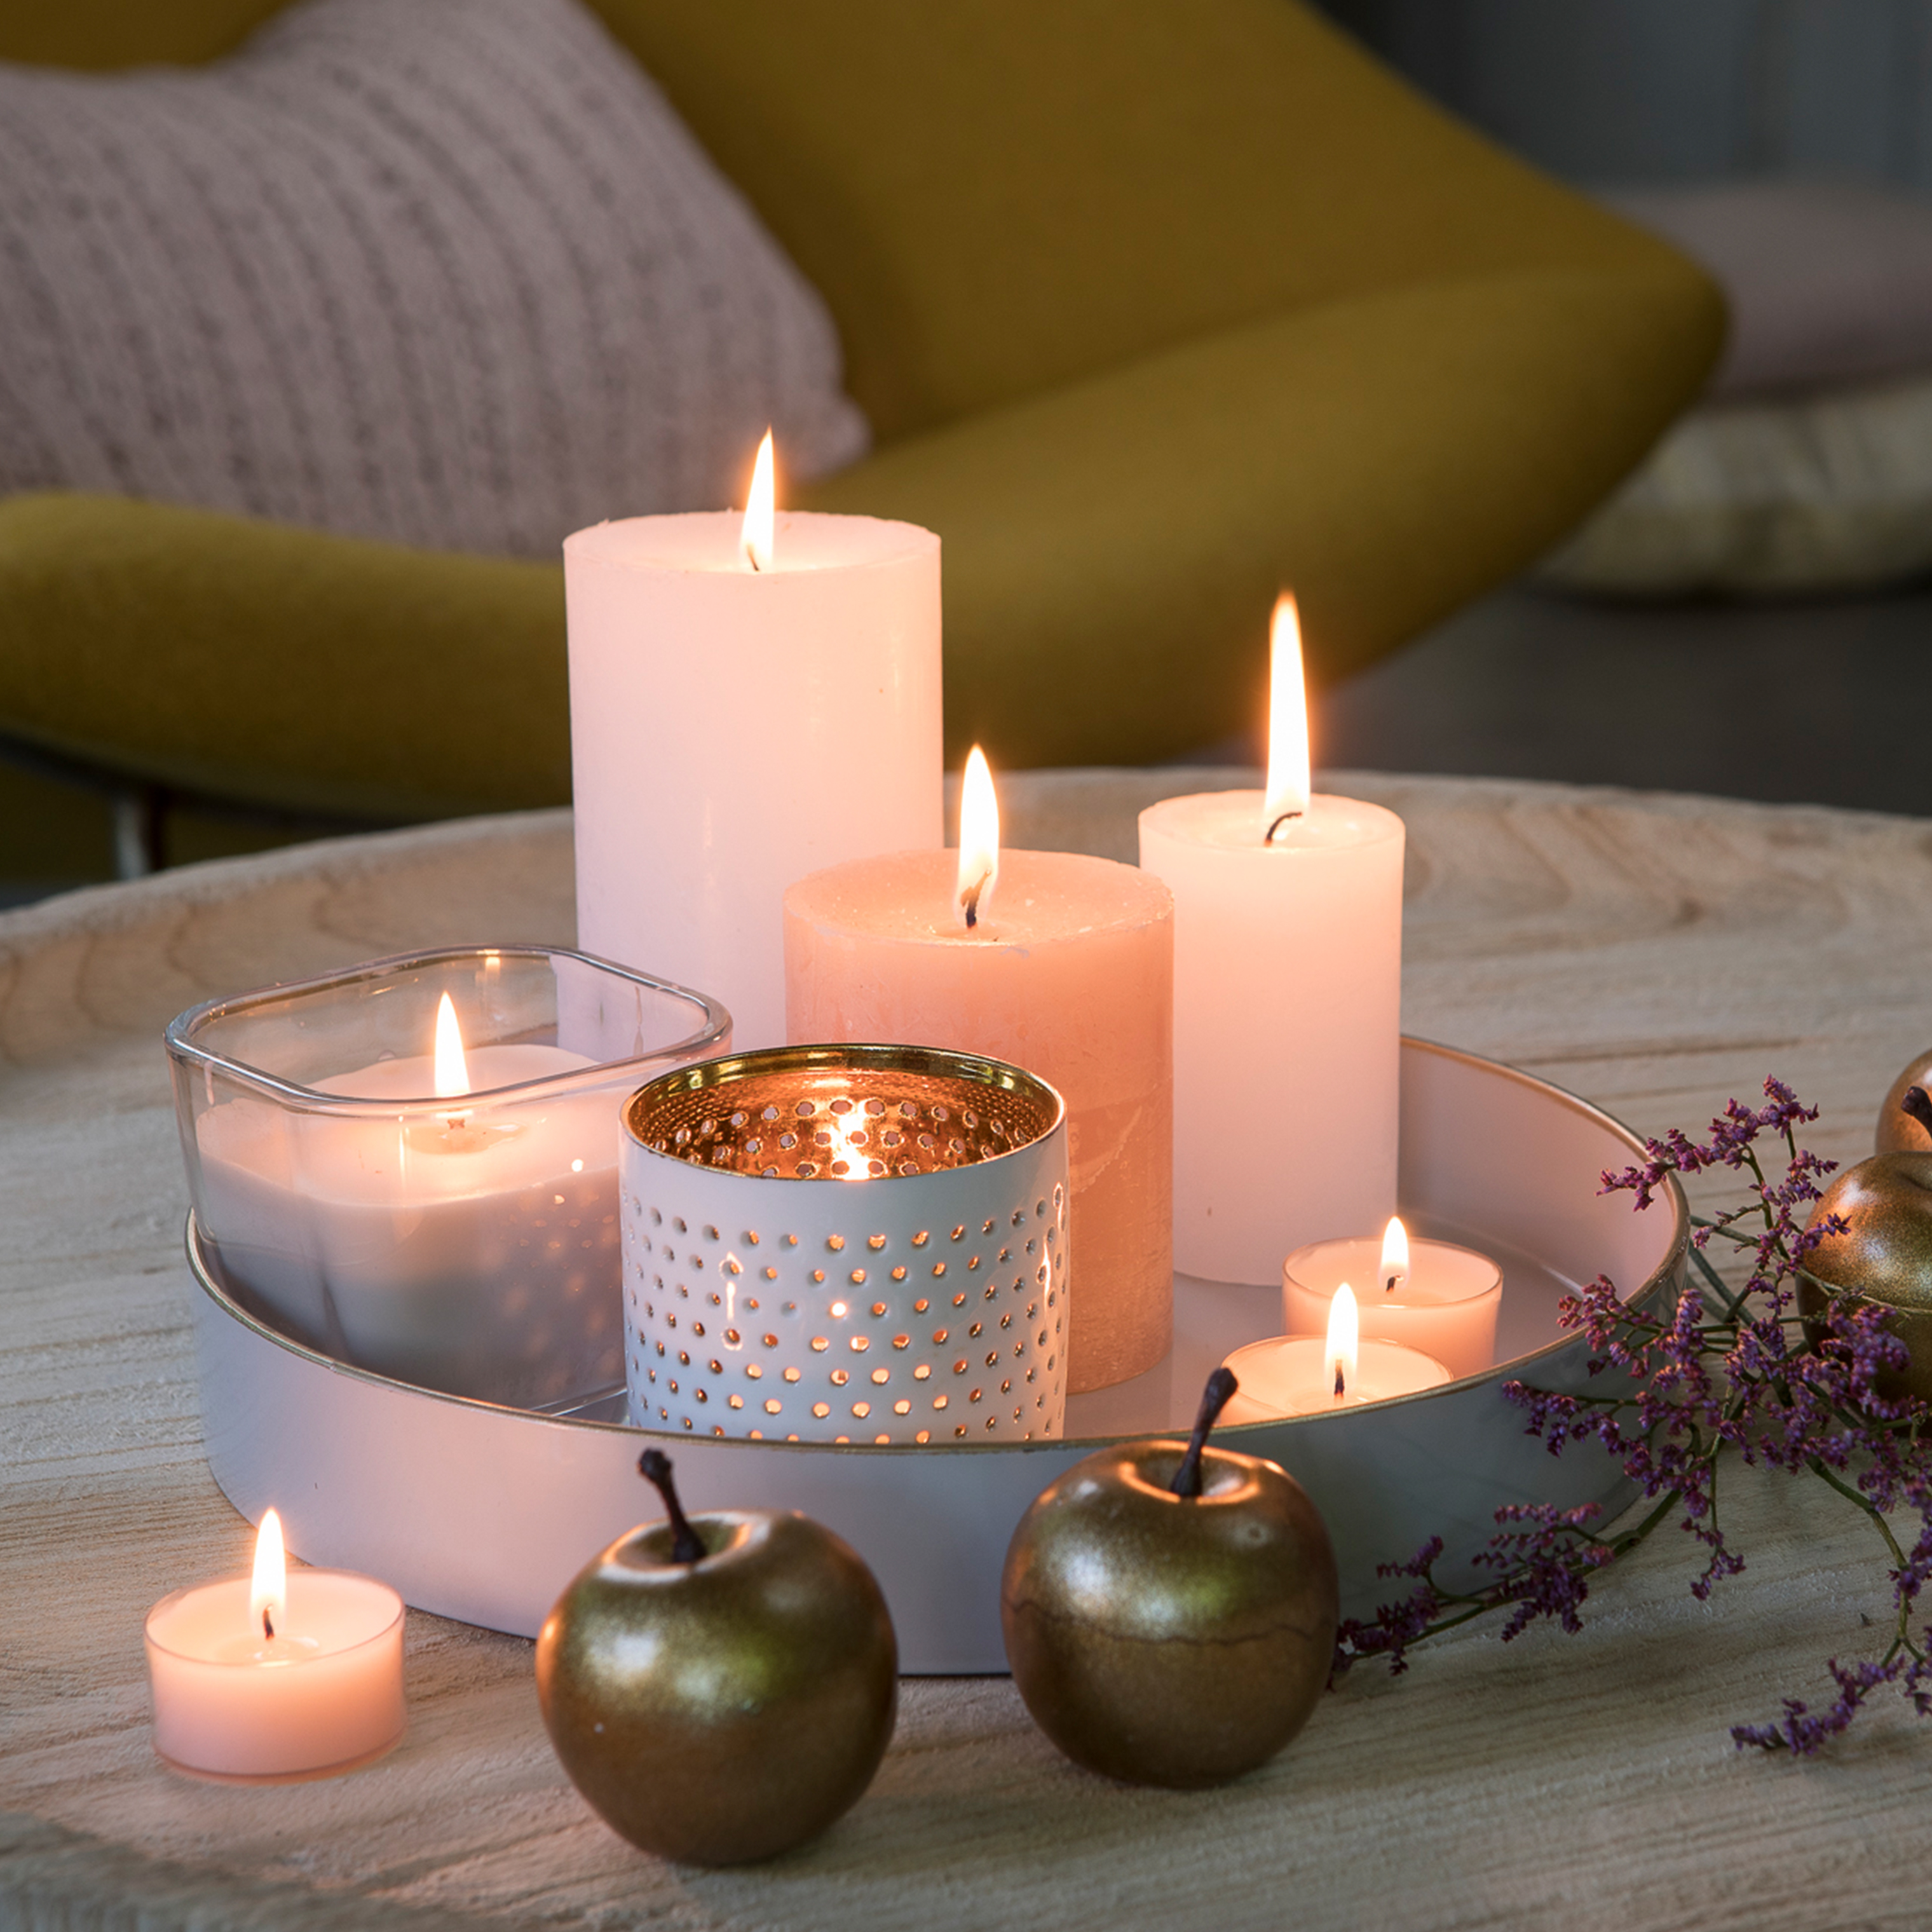 SPAAS-Cosy-Moment-paquet-de-bougies